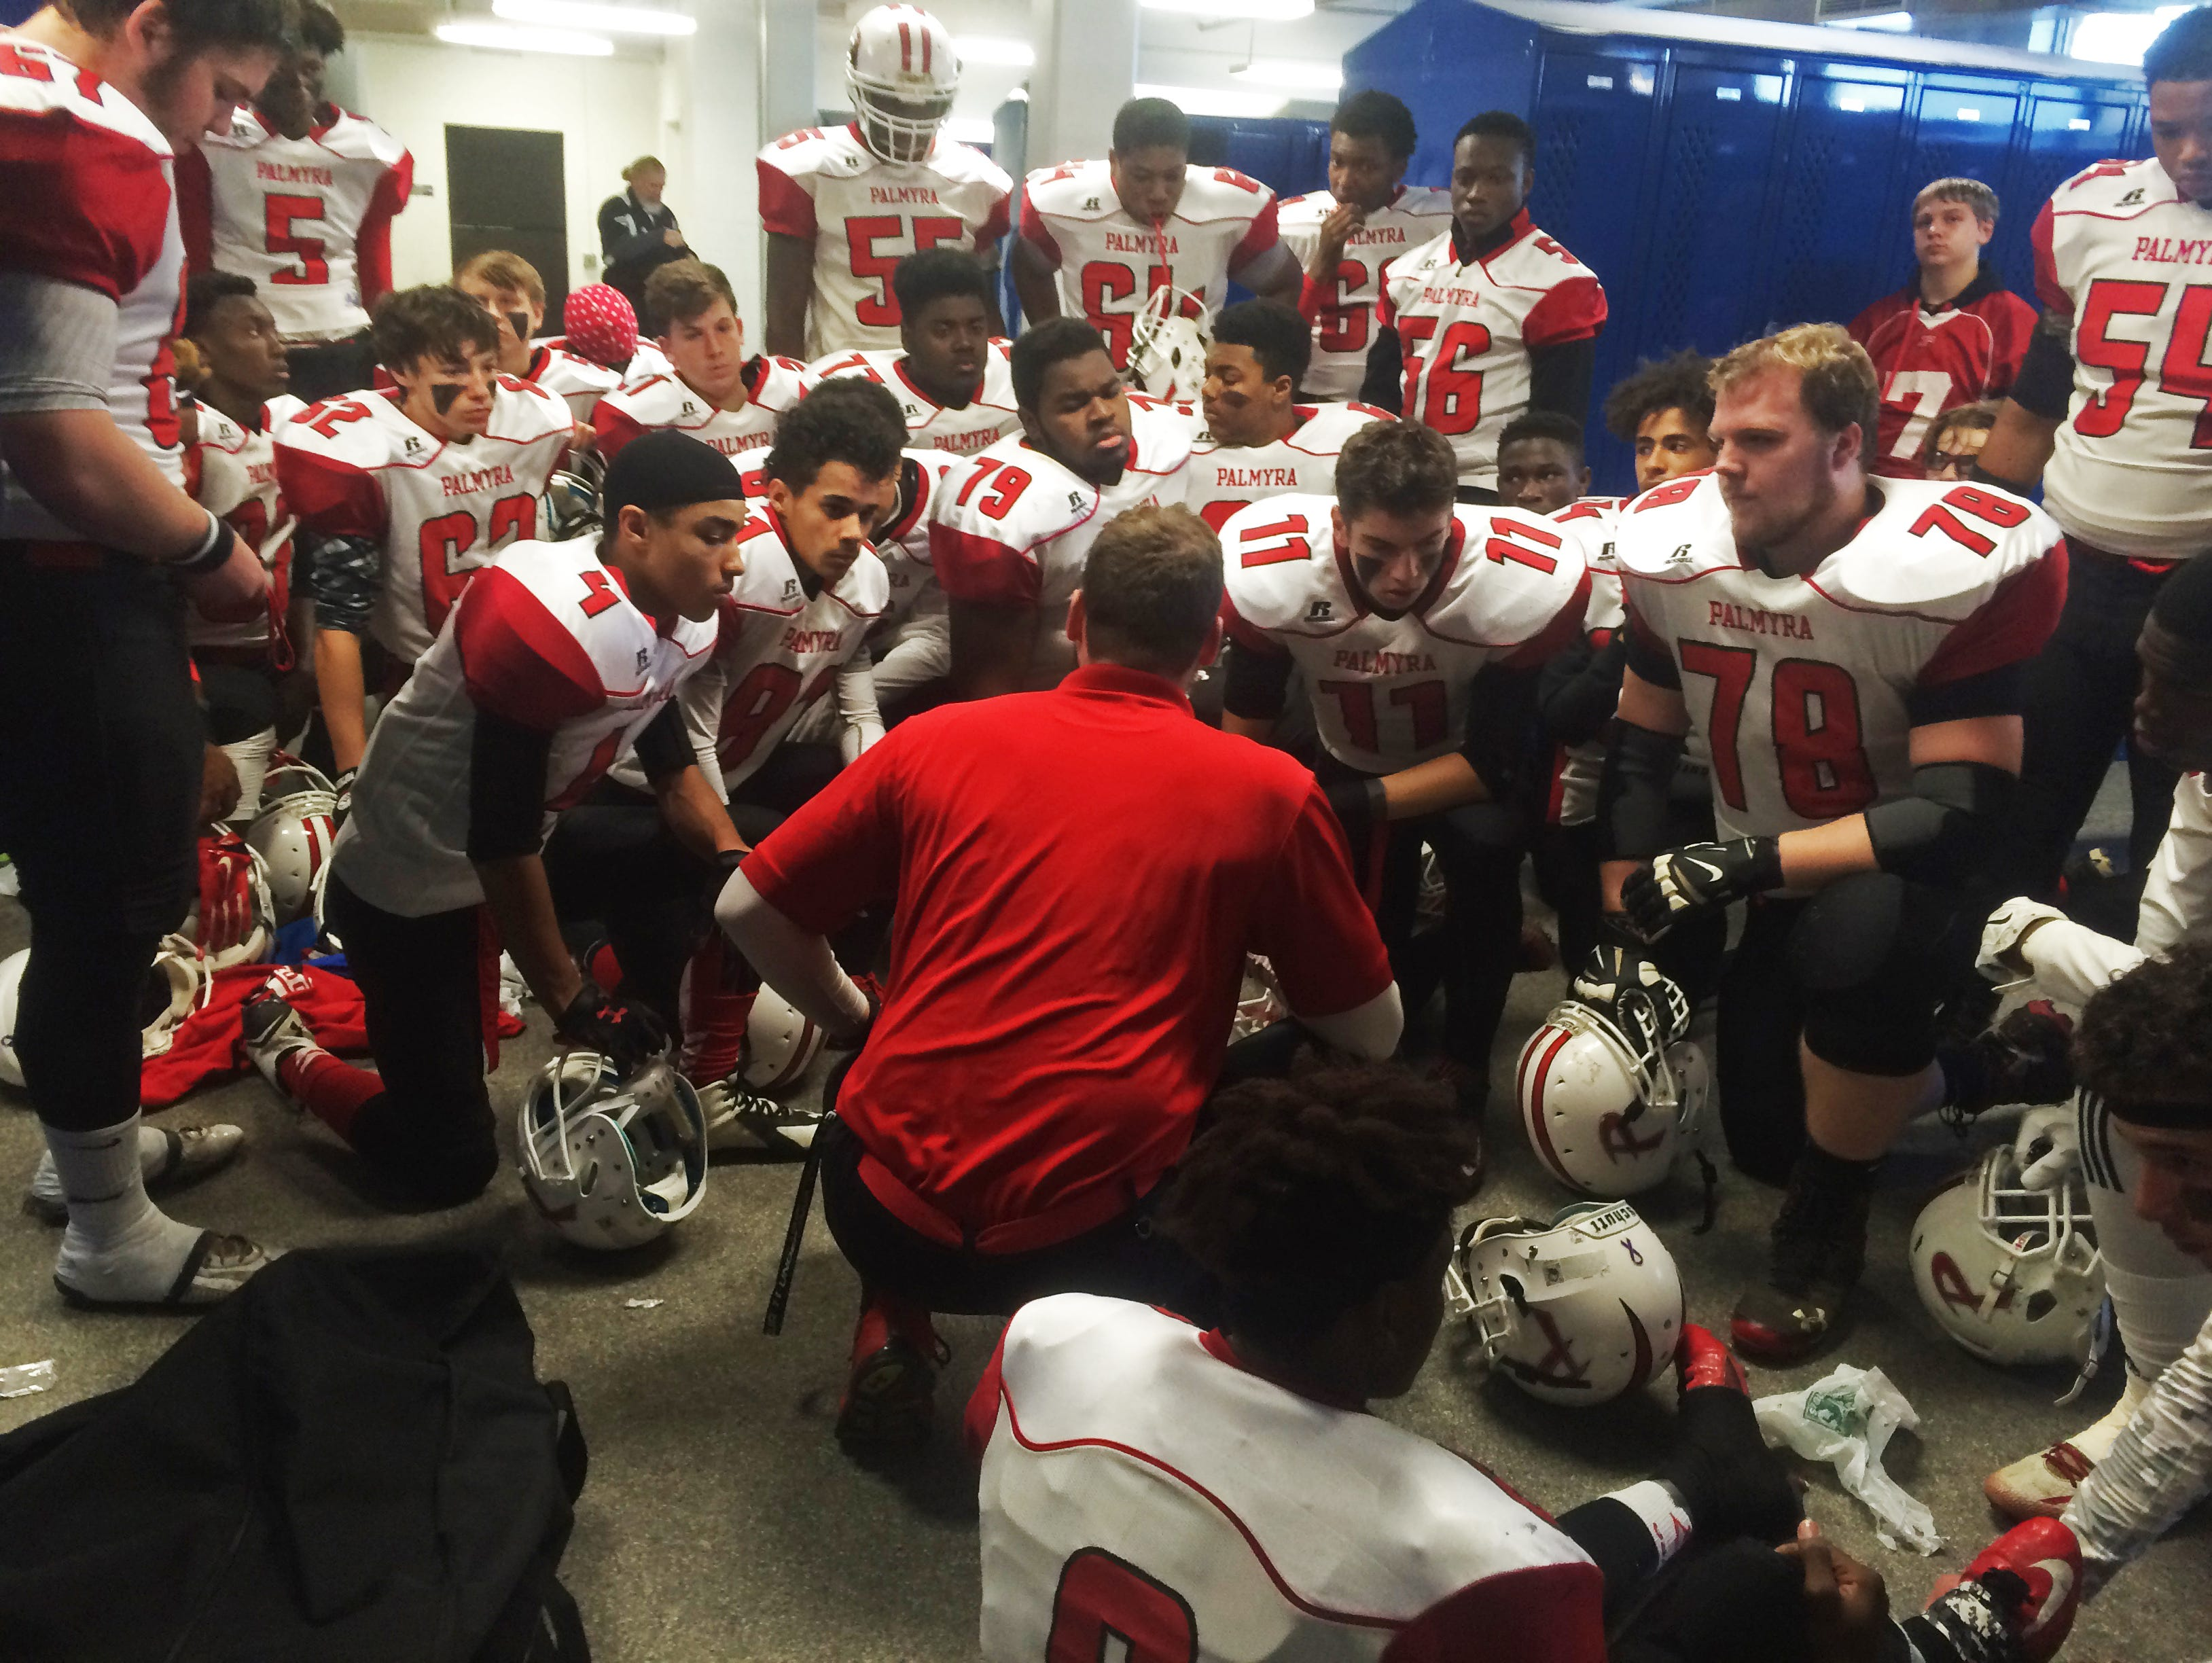 Palmyra High School's football team gathers around assistant coach Conor Geisel, middle, for a speech before Dec. 5's Central Jersey Group 1 final at Kean University.